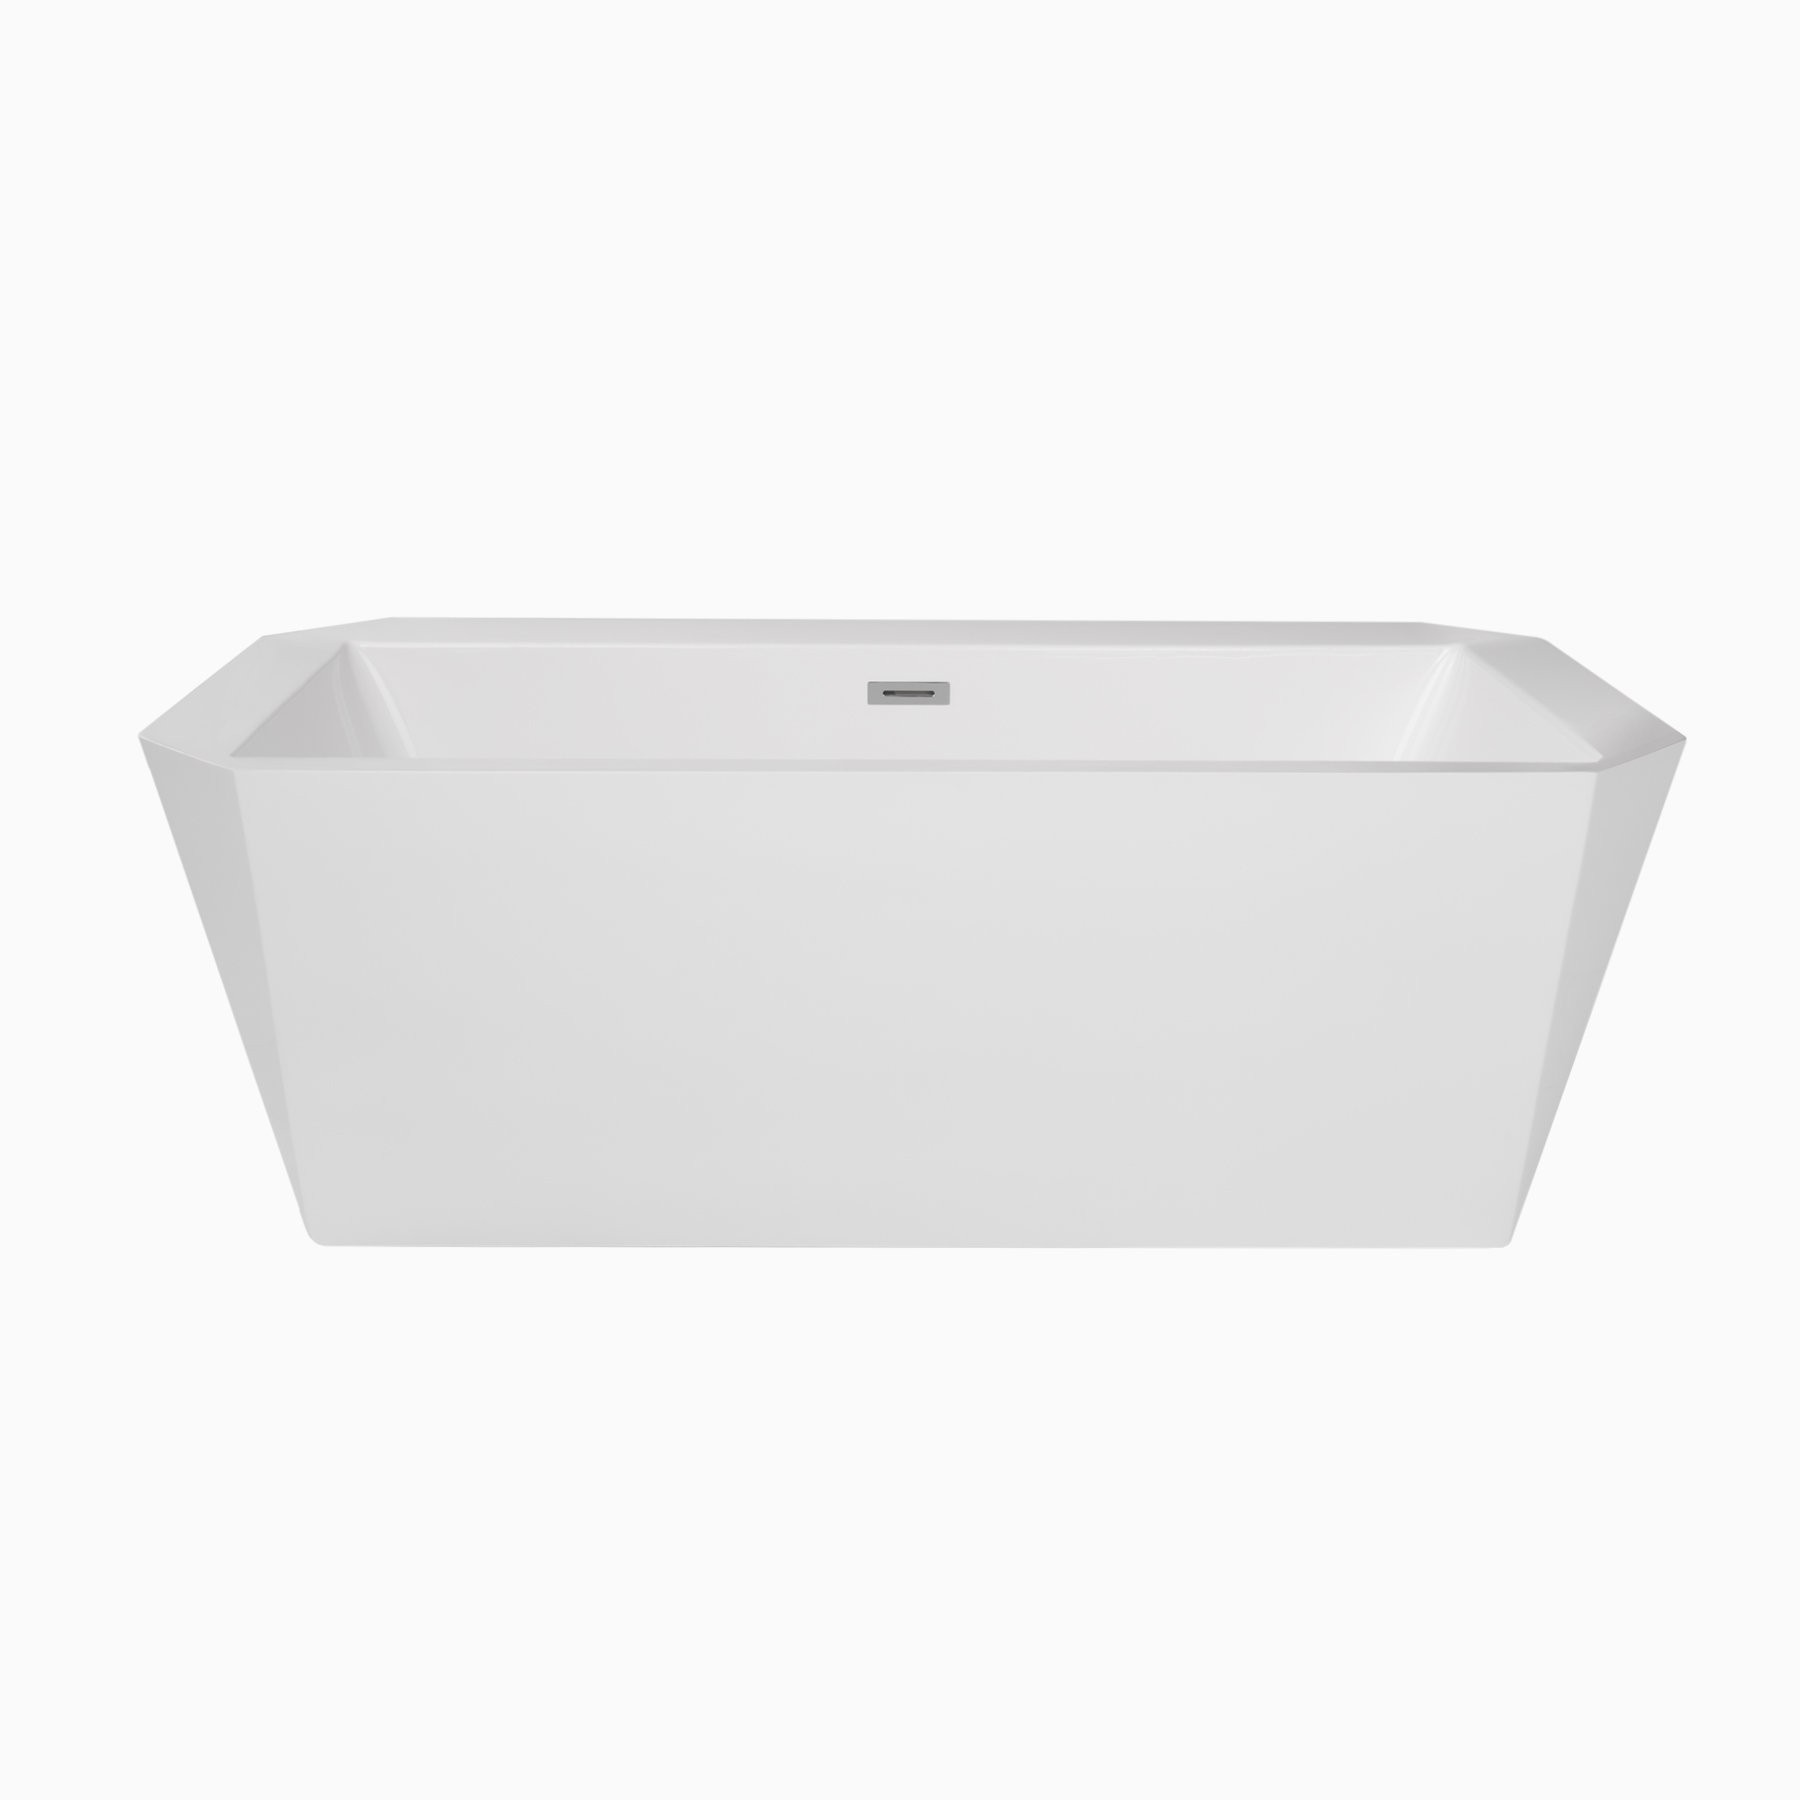 Free Standing Tubs - Stand Alone Bathtubs - Freestanding Soaking Tub